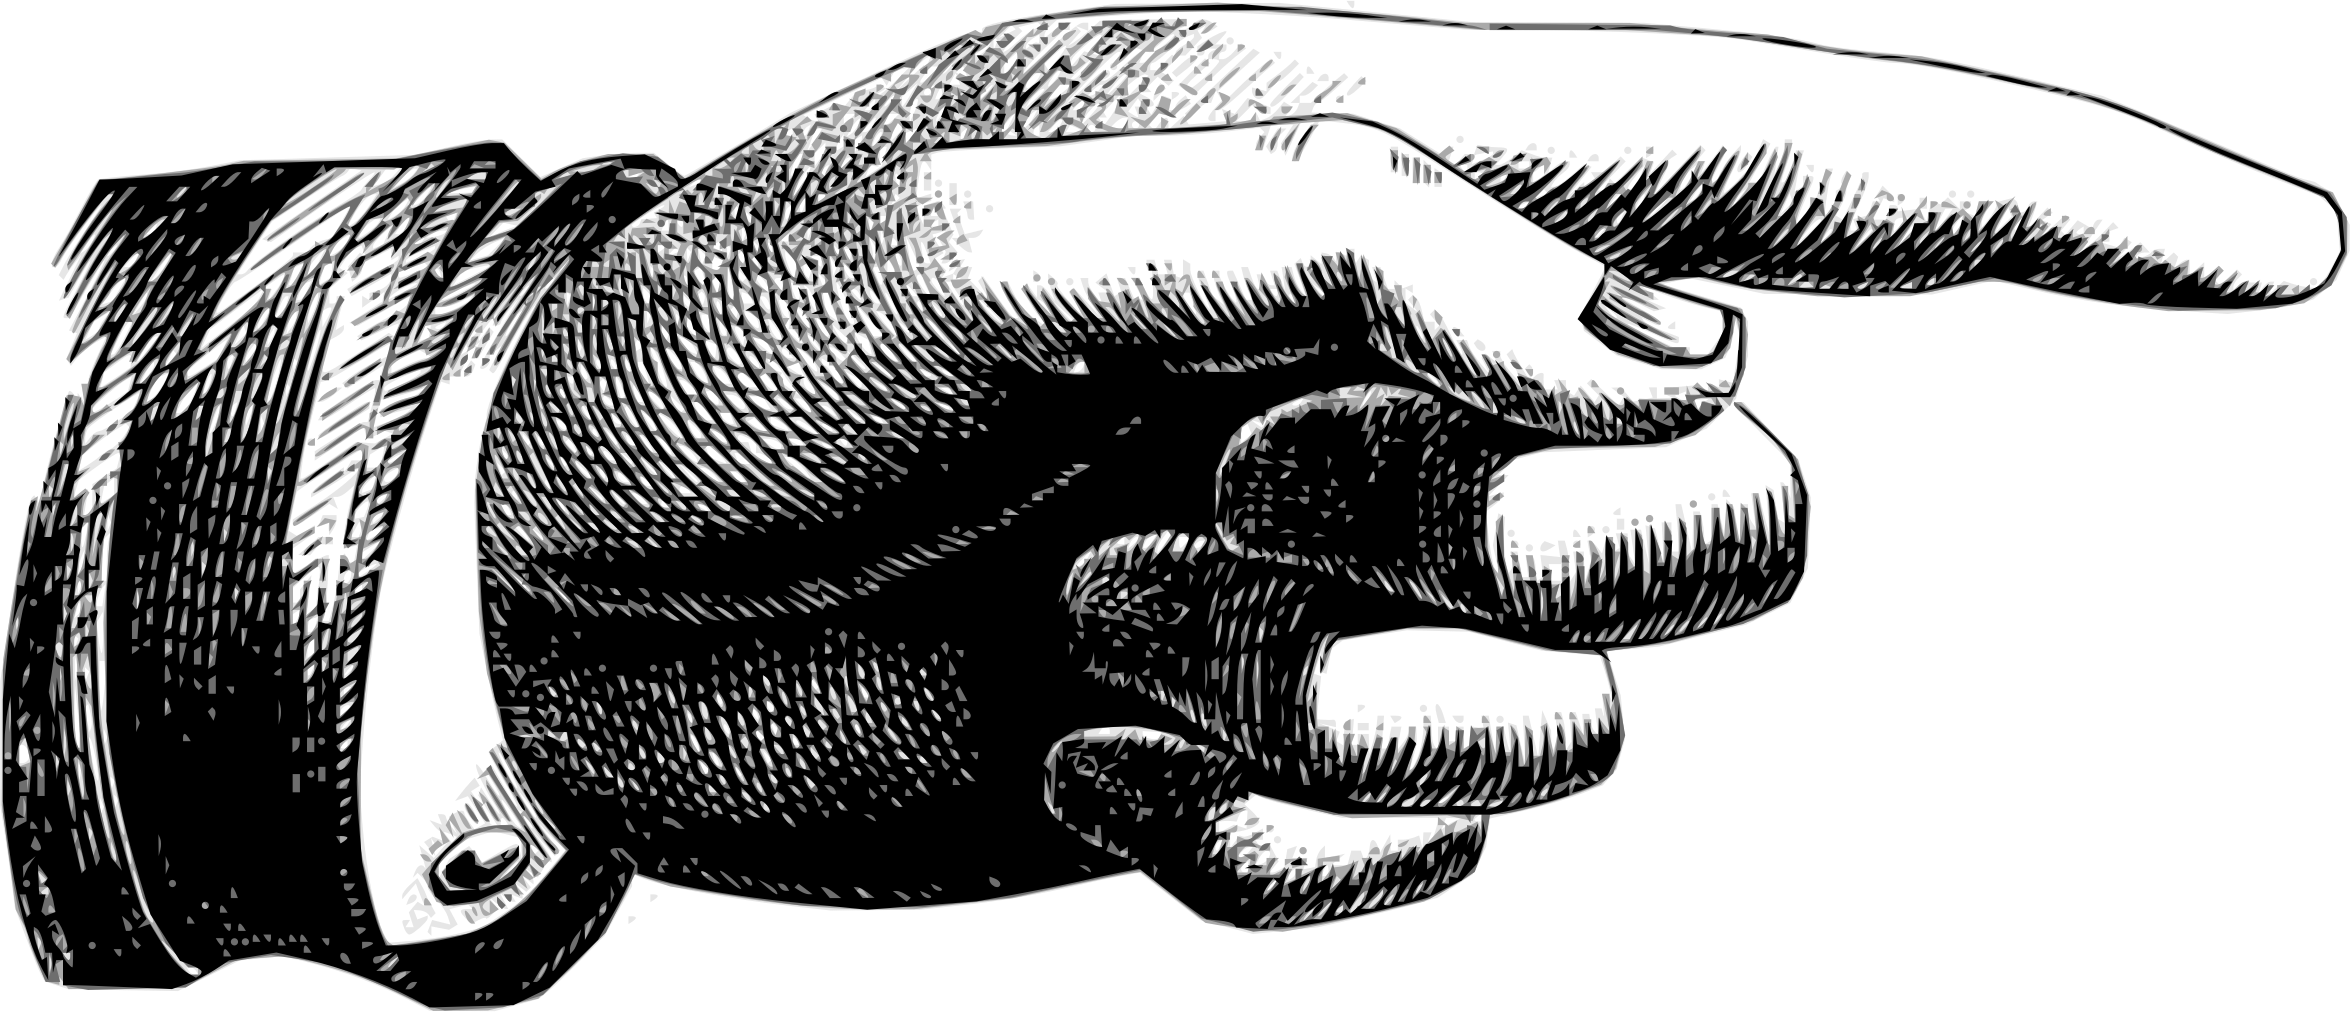 Clipart hands vintage, Clipart hands vintage Transparent.